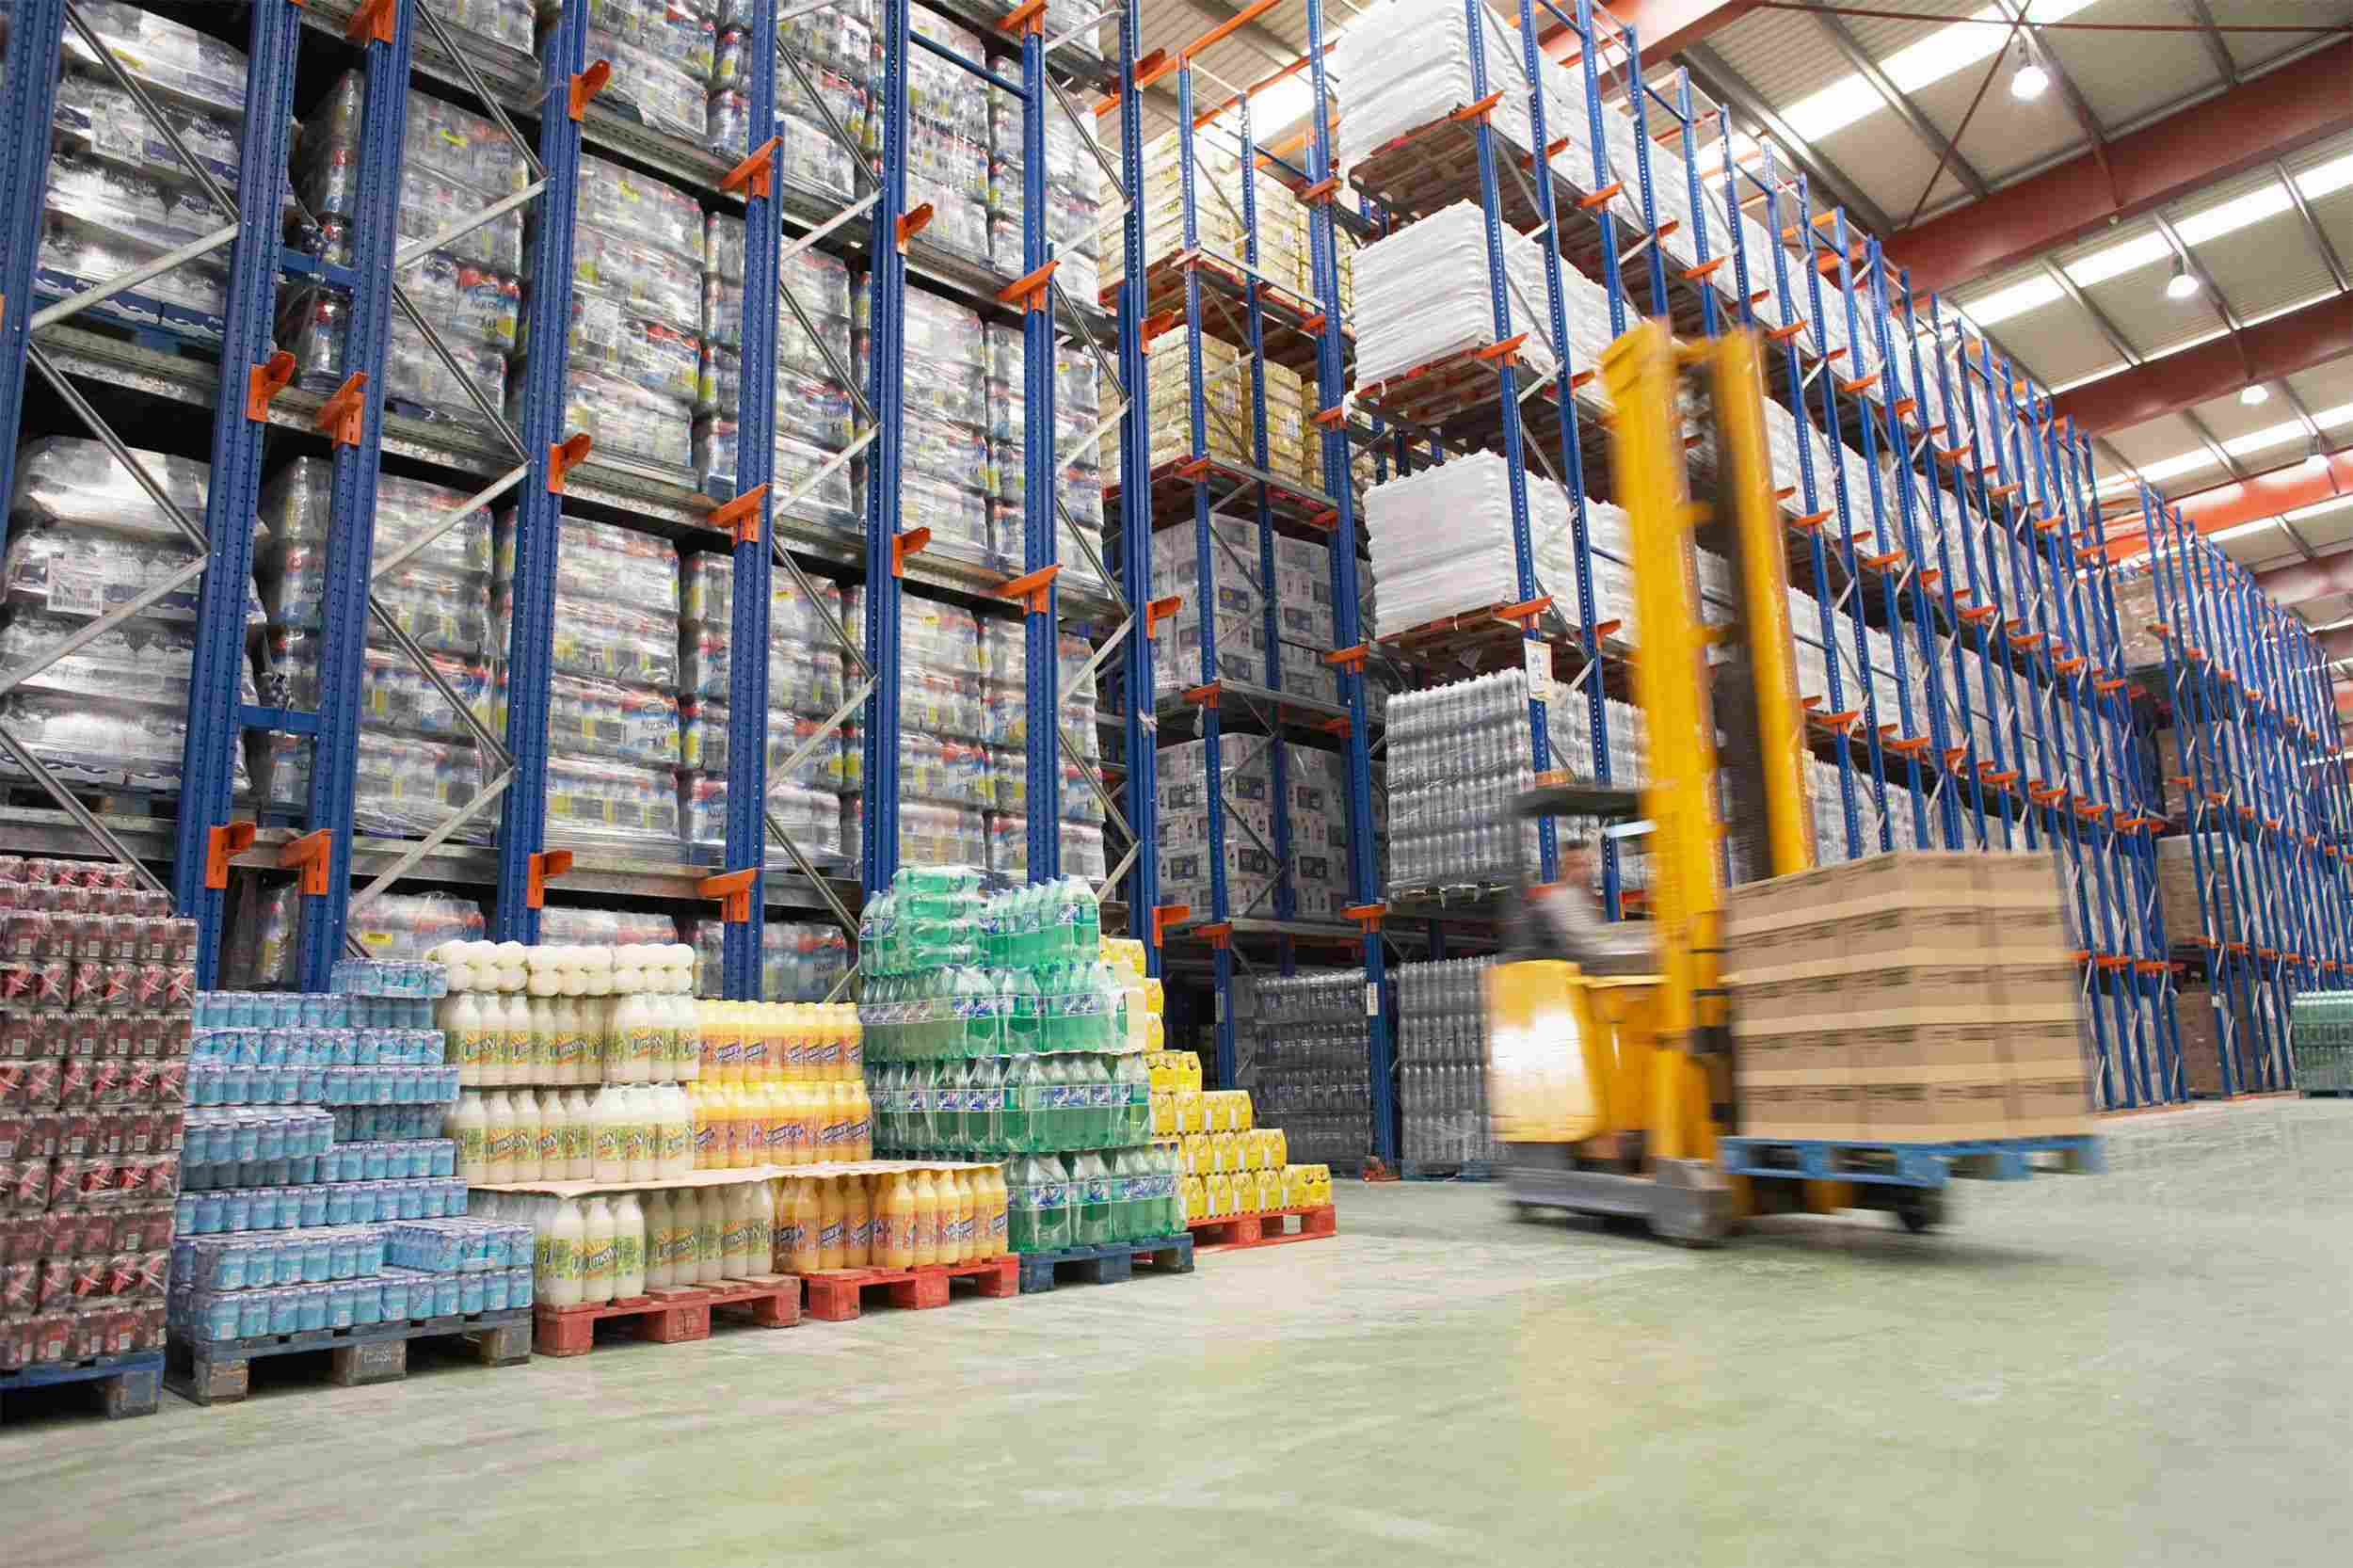 https://www.omicmyanmar.com/wp-content/uploads/2015/09/Warehouse-and-lifter.jpg